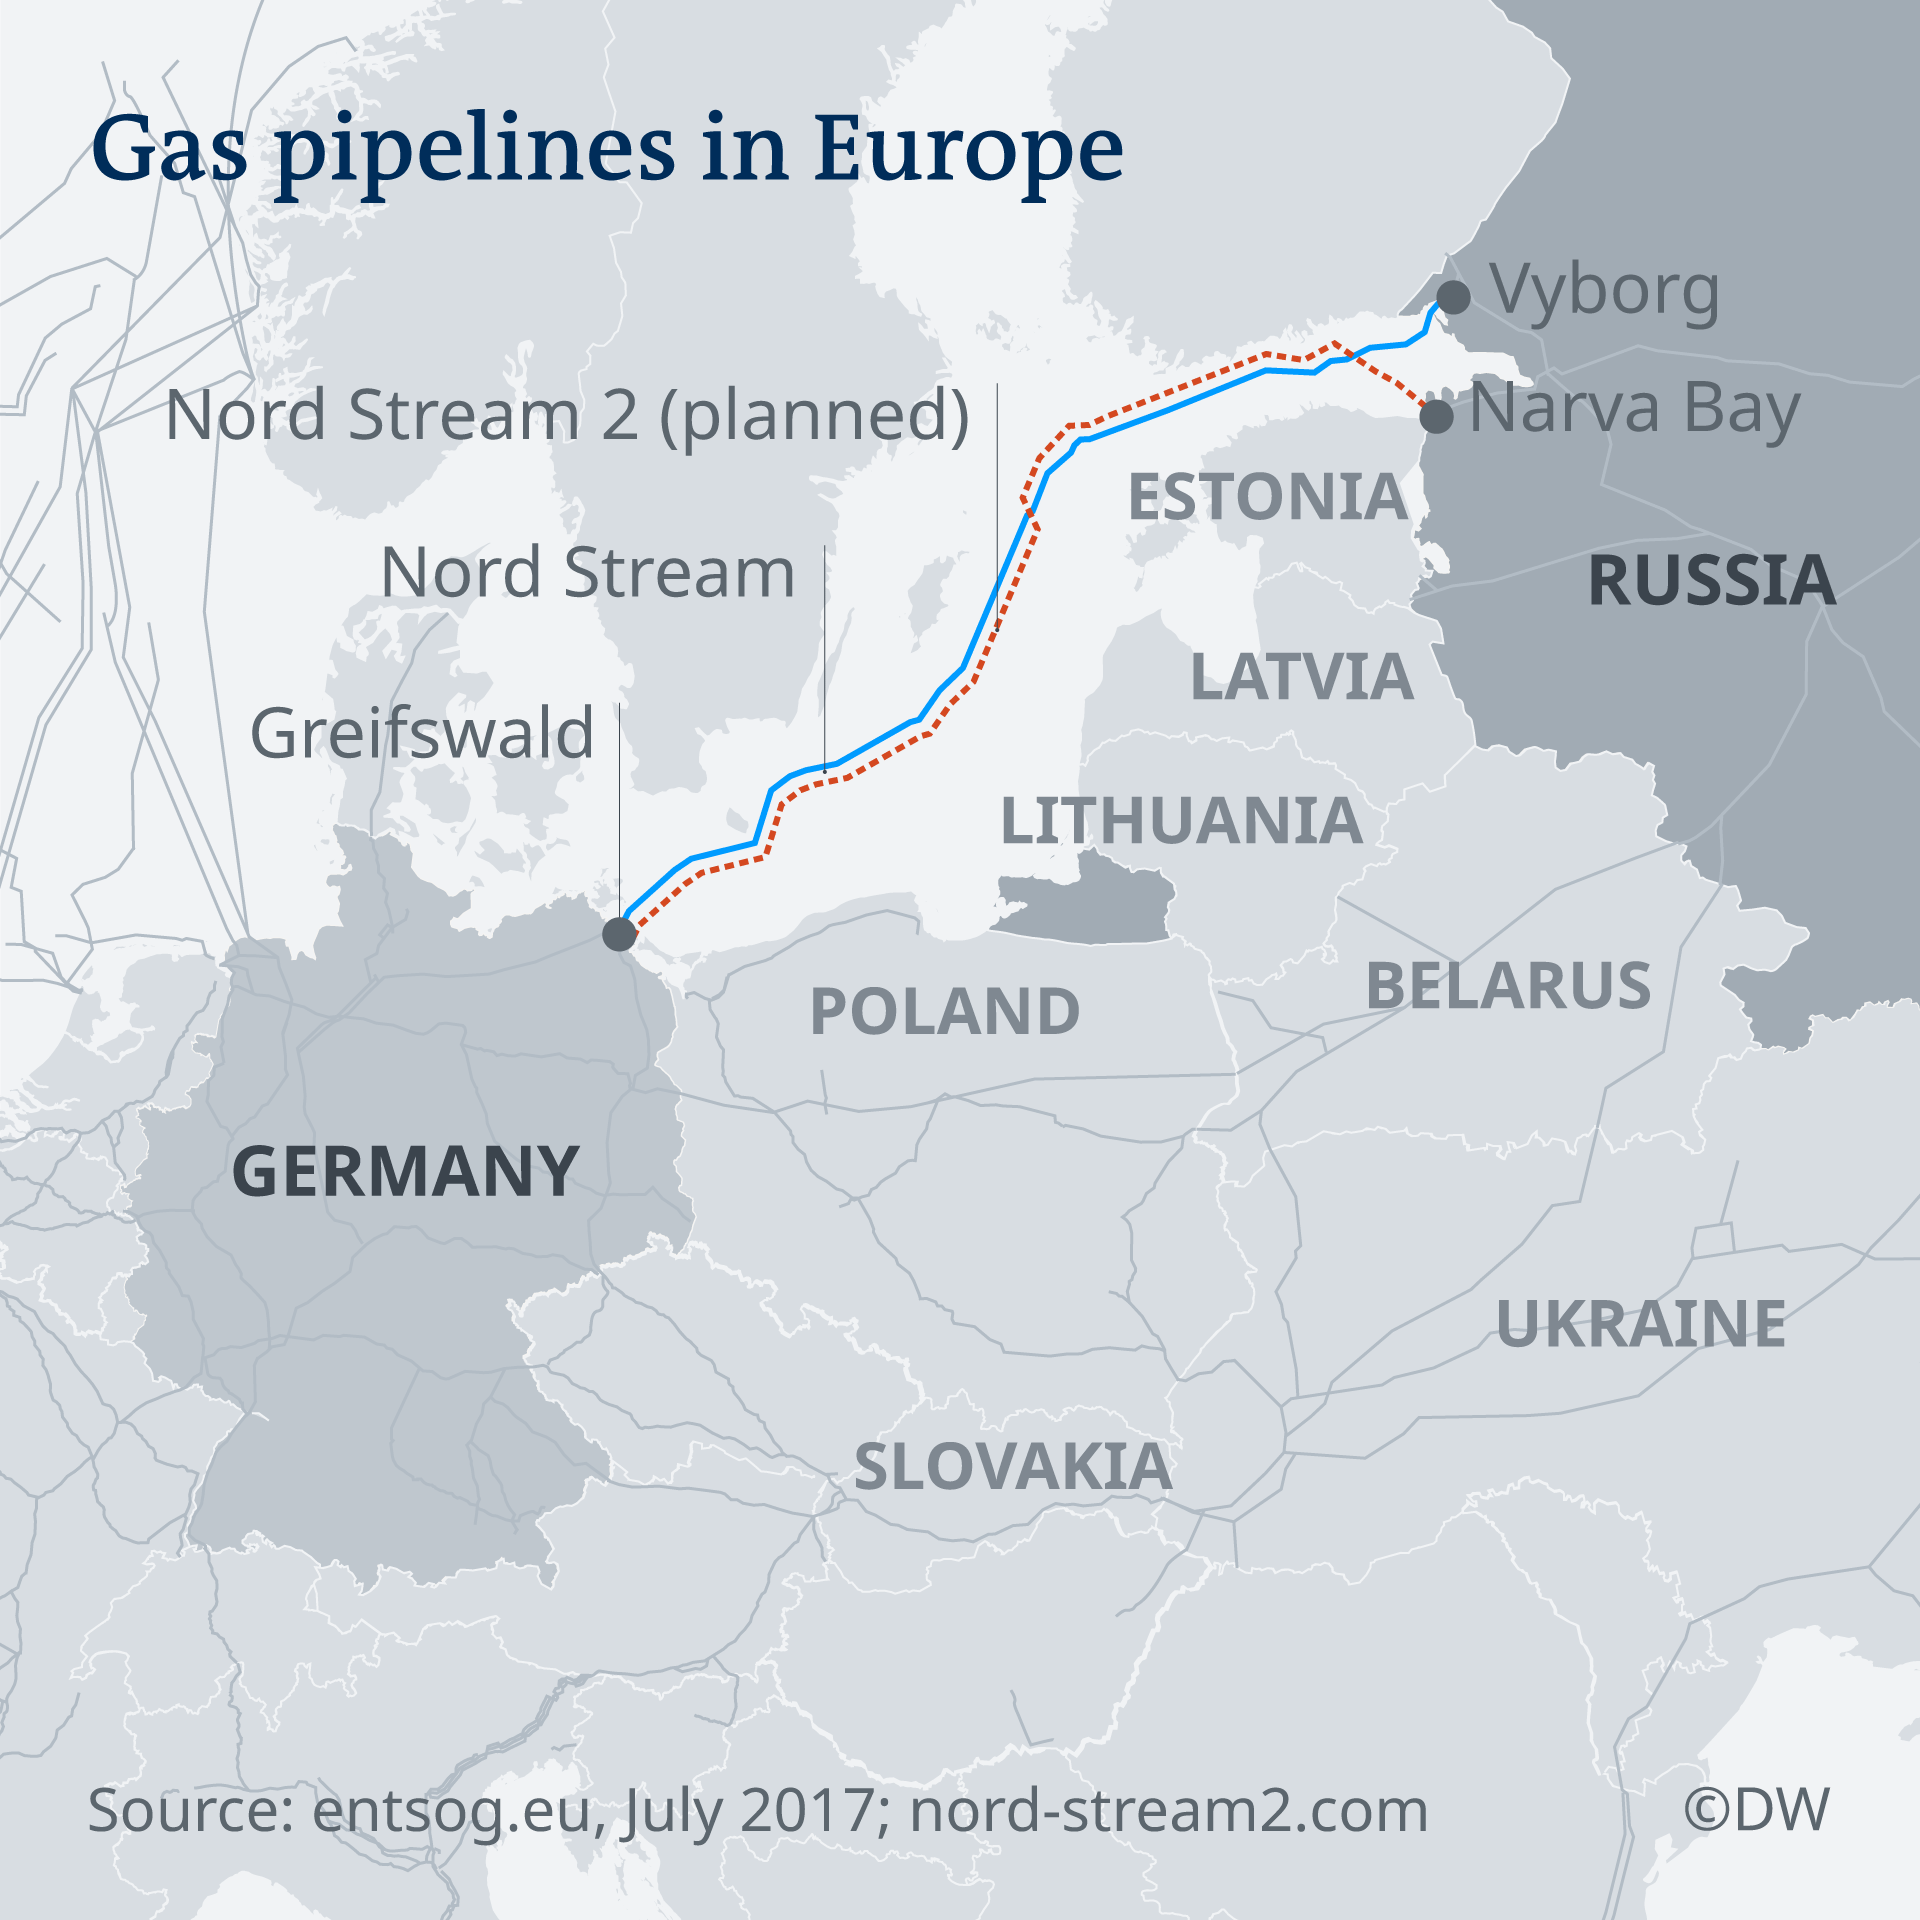 The route of the Nord Stream pipeline